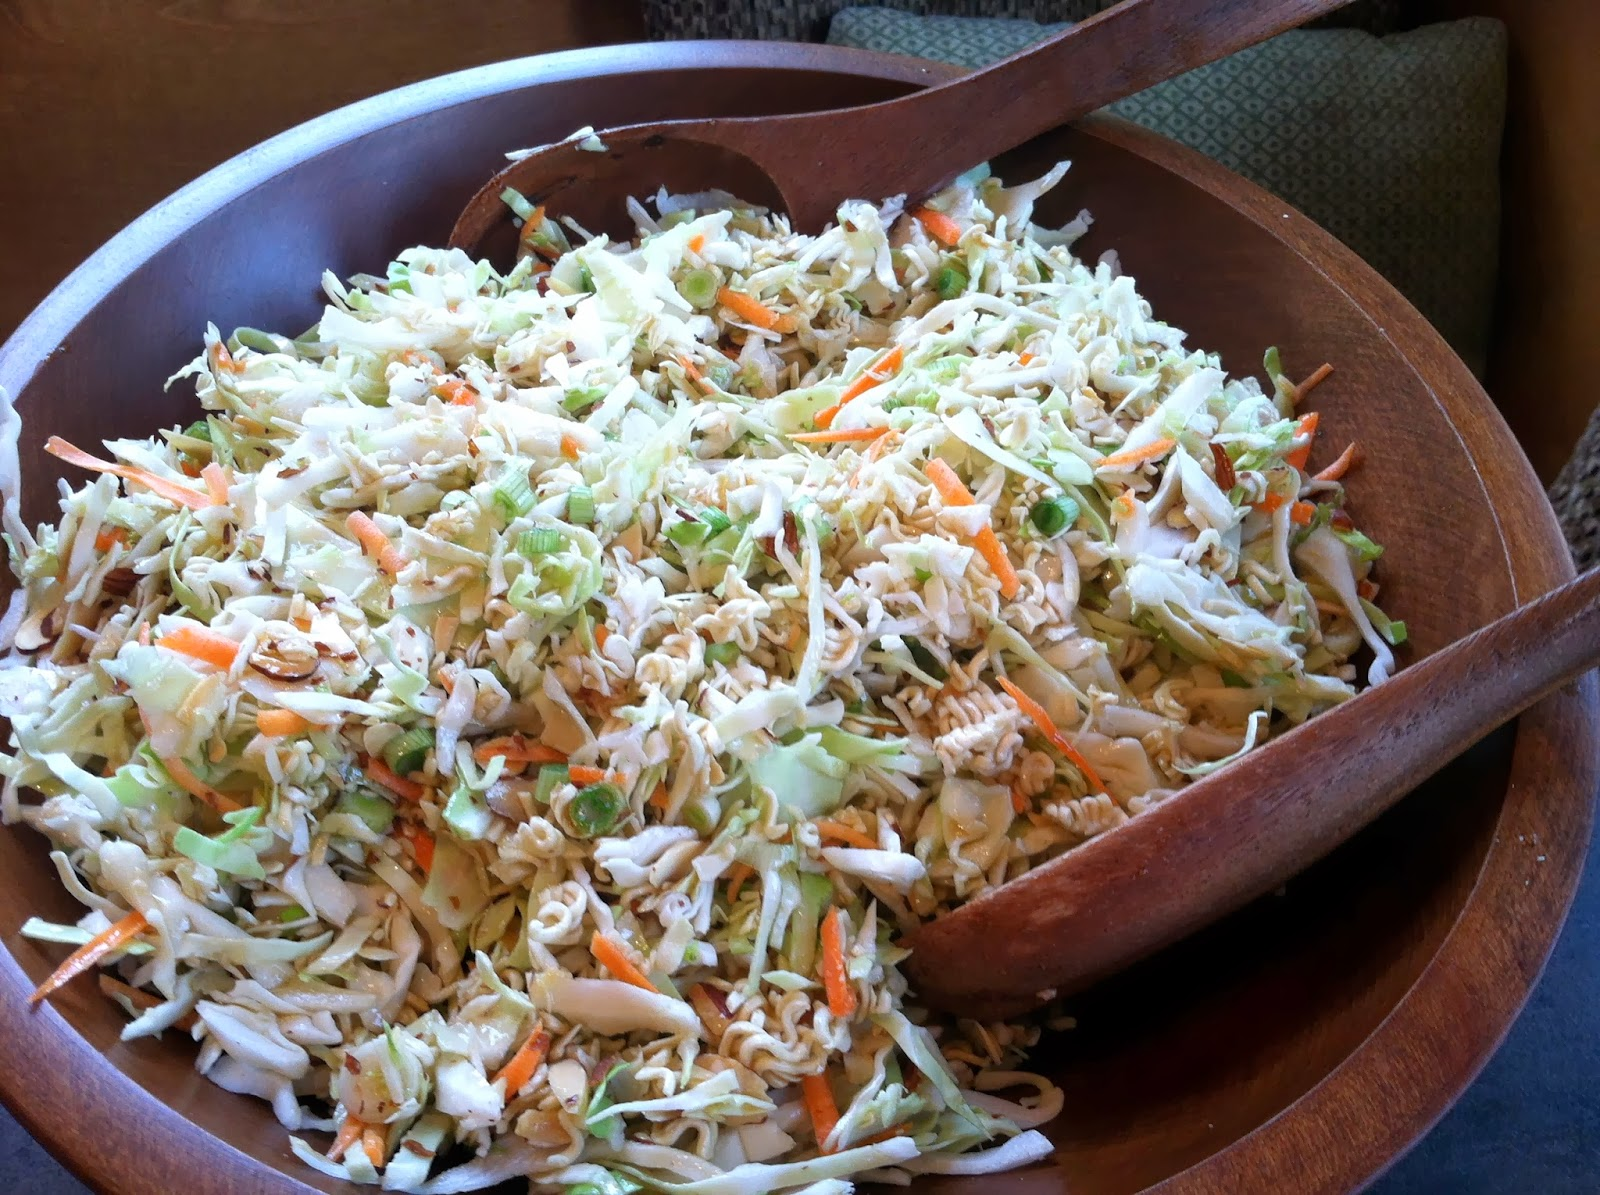 Cabbage and Ramen Noodle Salad Recipe